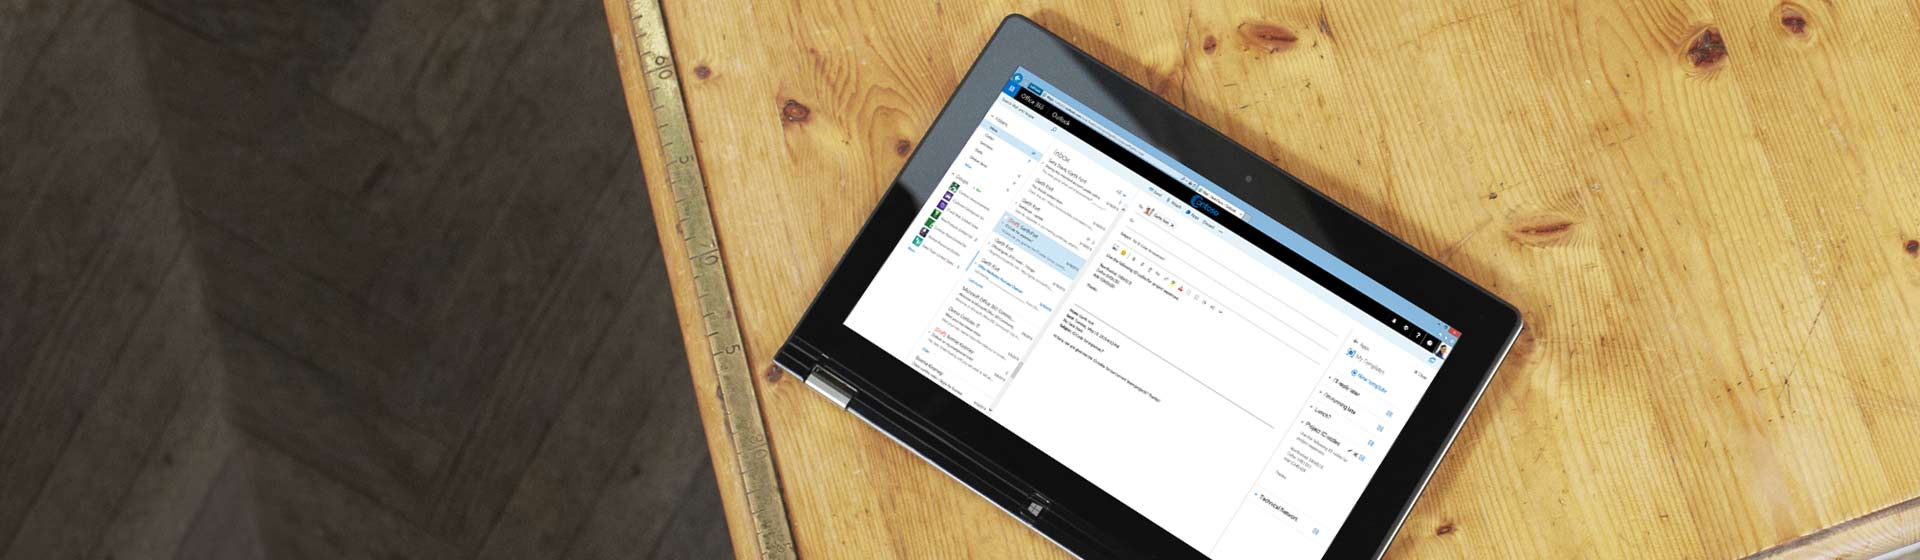 A tablet on a table showing a close-up of a business email inbox, powered by Exchange.